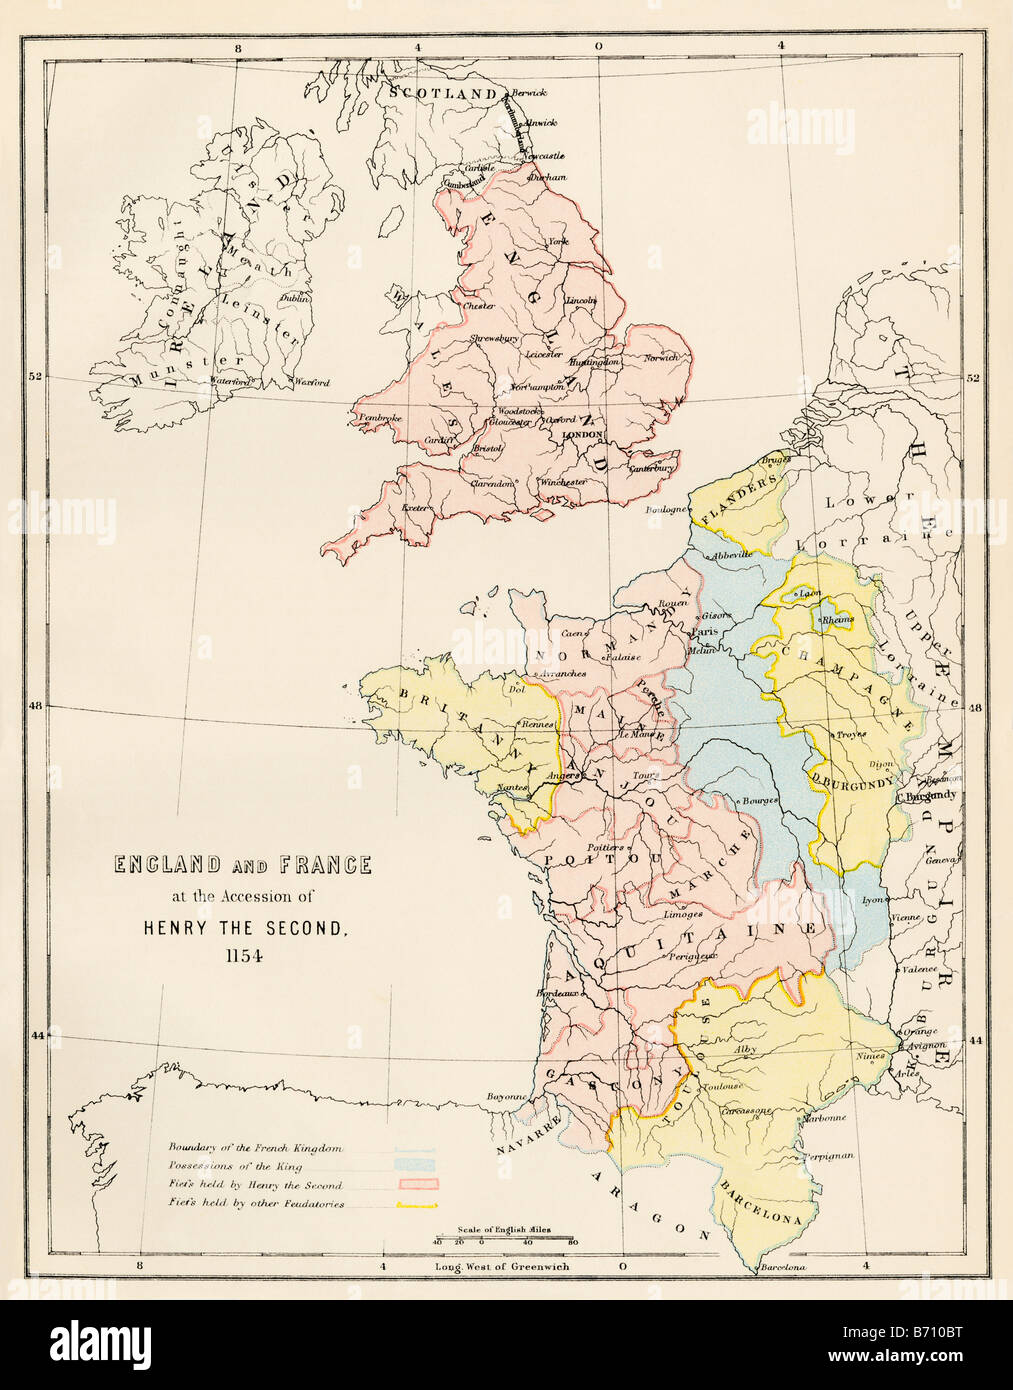 Map England France Stock Photos & Map England France Stock Images ...